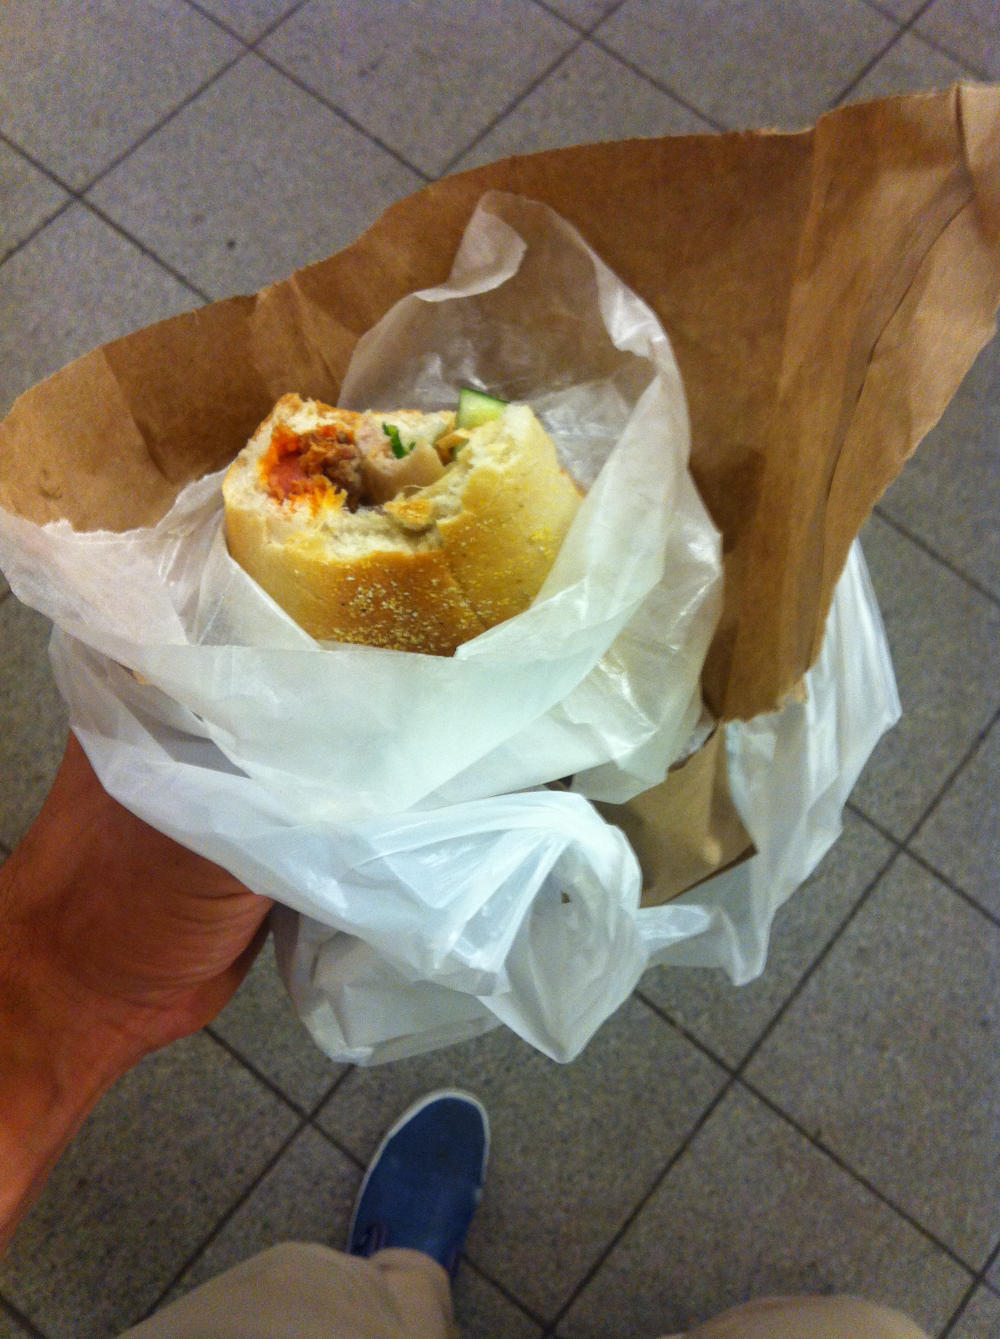 This is literally a sandwich in a bag in a bag in a bag. It was a good sandwich, but still.